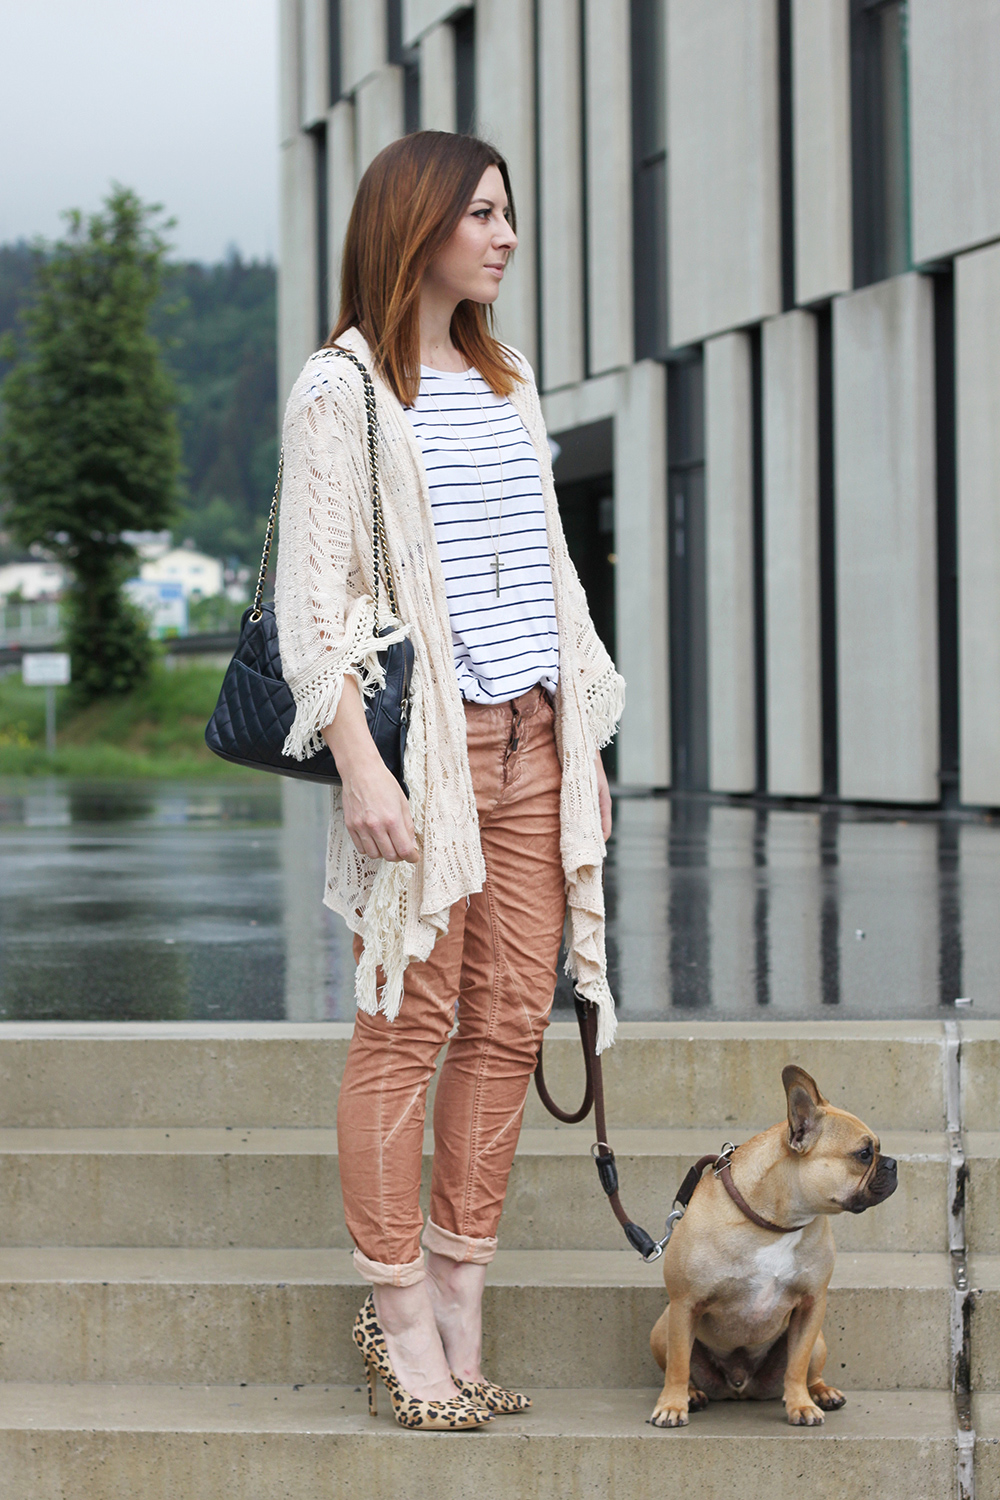 who is mocca, blogger, tirol, innsbruck, österreich, fashionblogger, timezone jeans, streifenshirt, kimono, fransen, mango, chanel vinage camera bag, frenchie, leo pumps new look, whoismocca.com